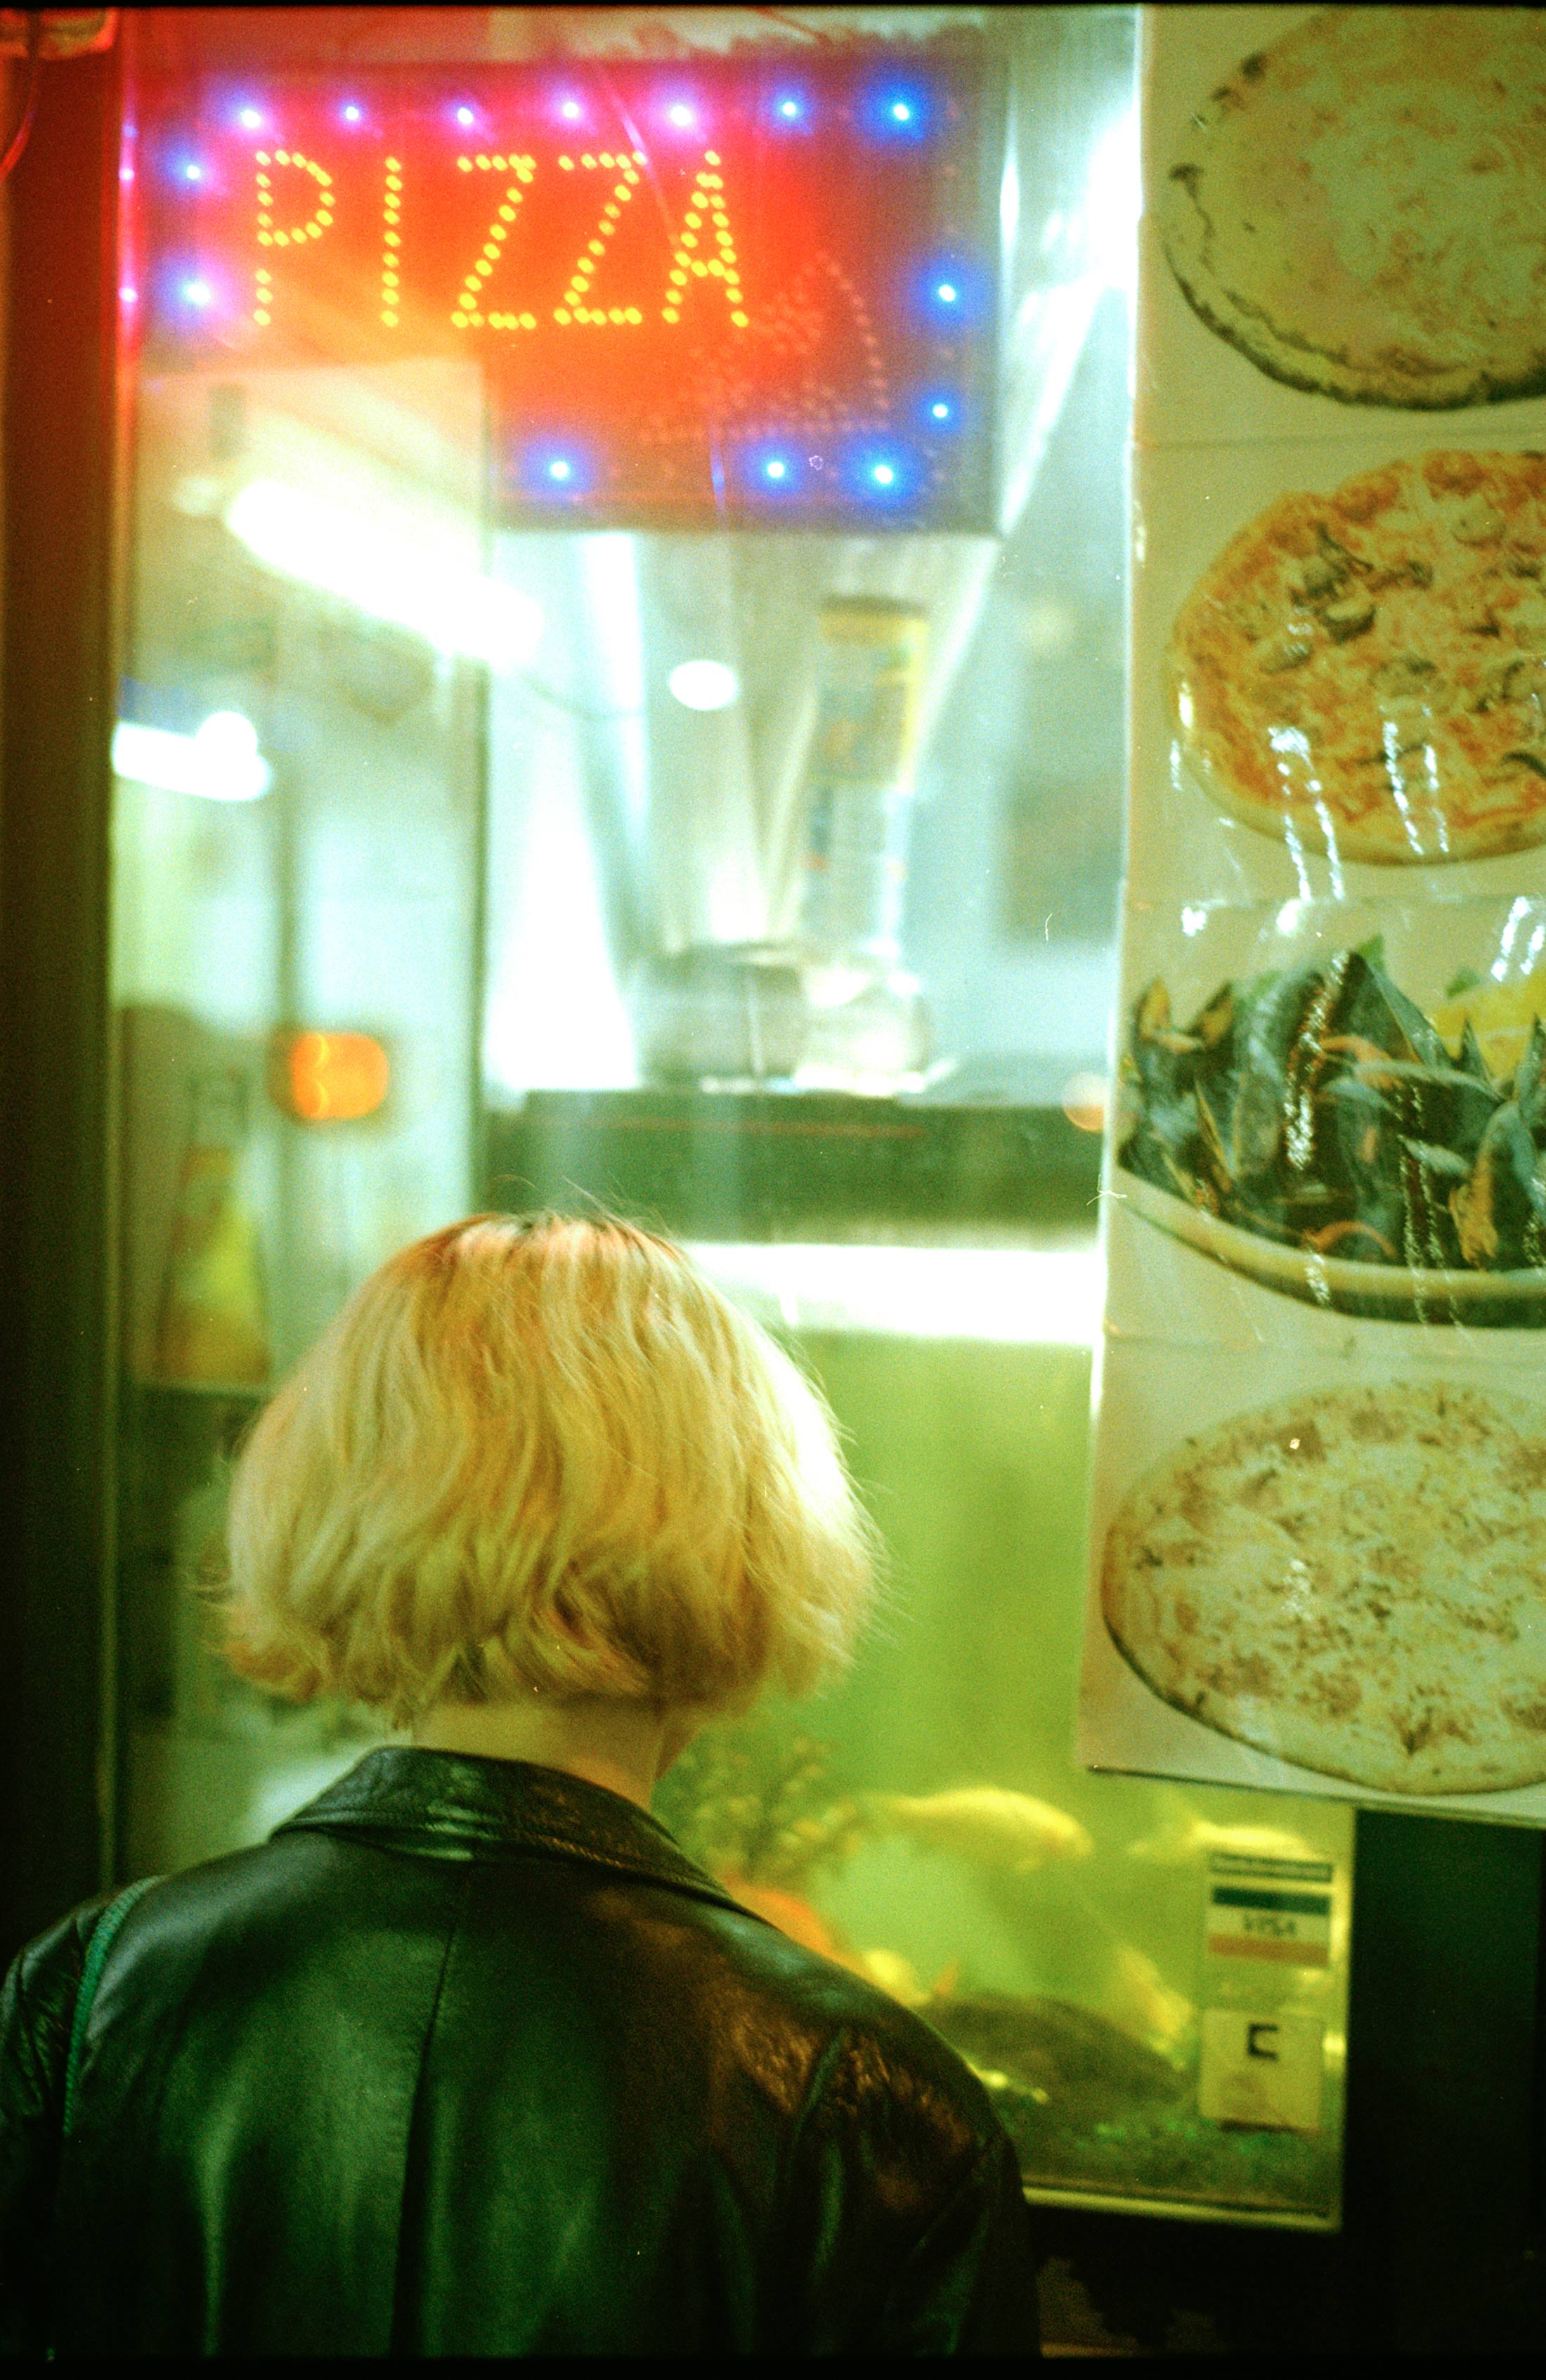 paula hummer, photography, 35mm, color, pizza, girl, online viewing room, discover modern art